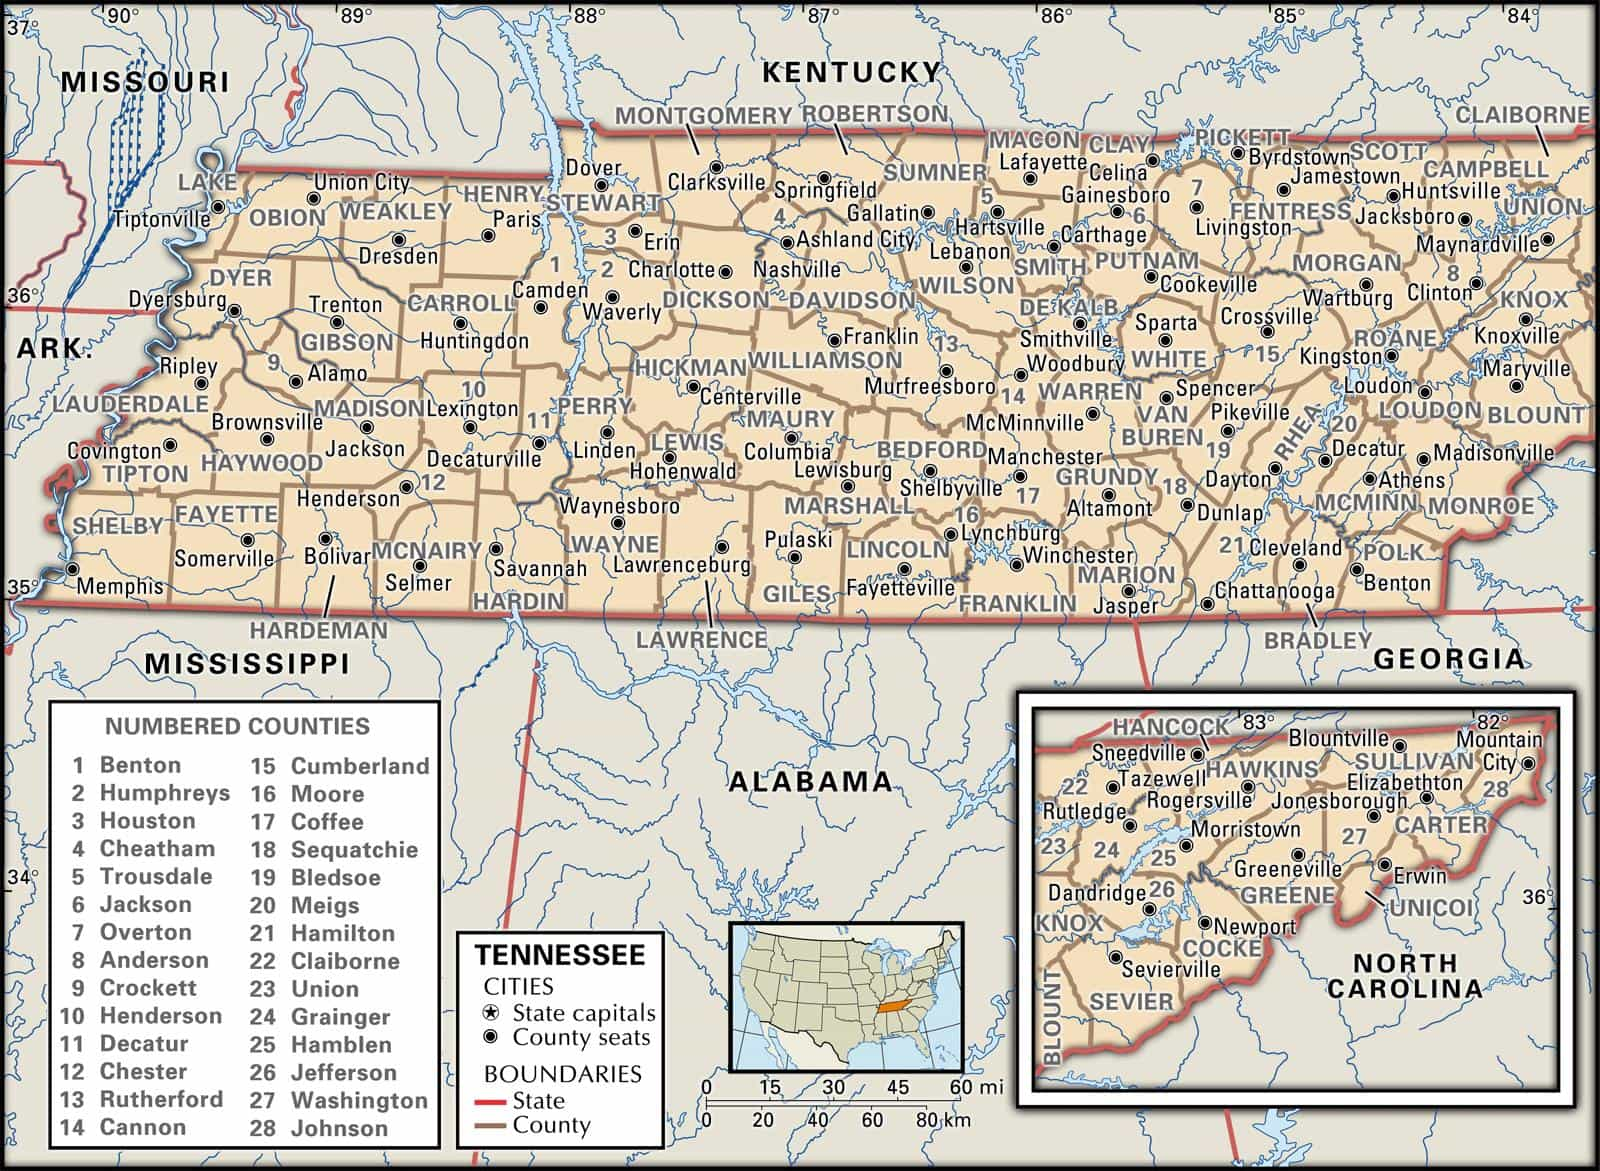 Historical Facts of the State of Tennessee Counties Guide